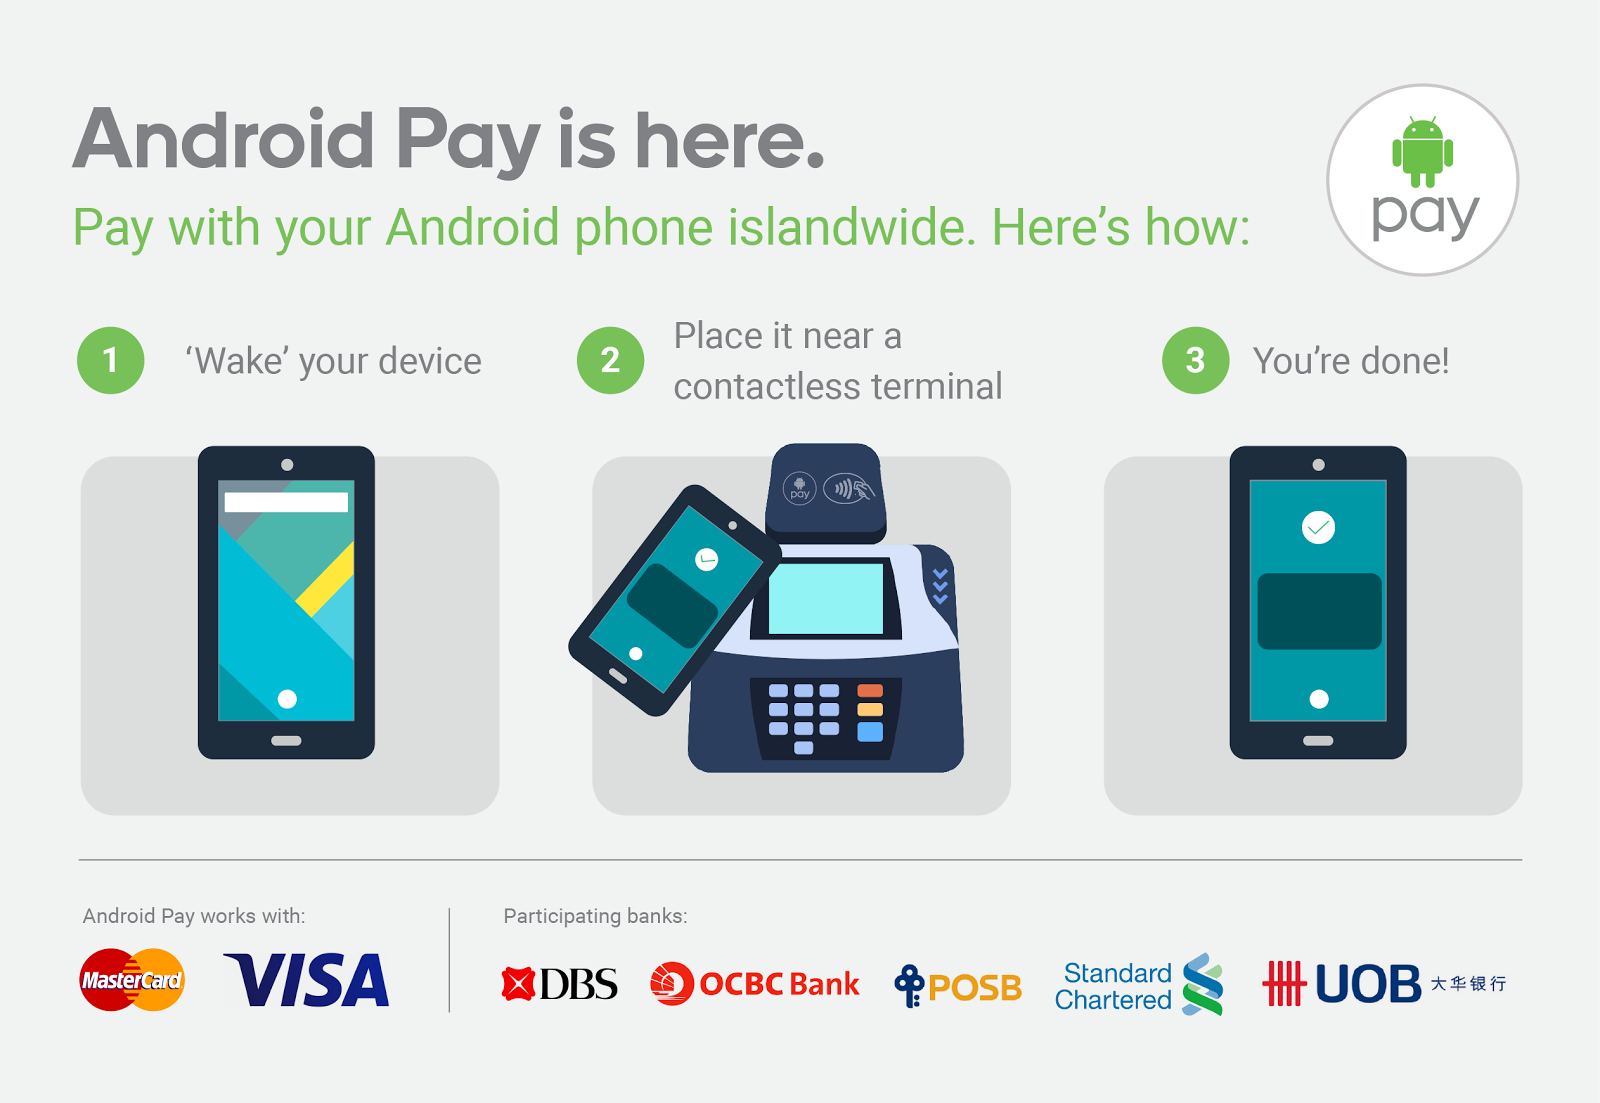 Android Pay in Singapore